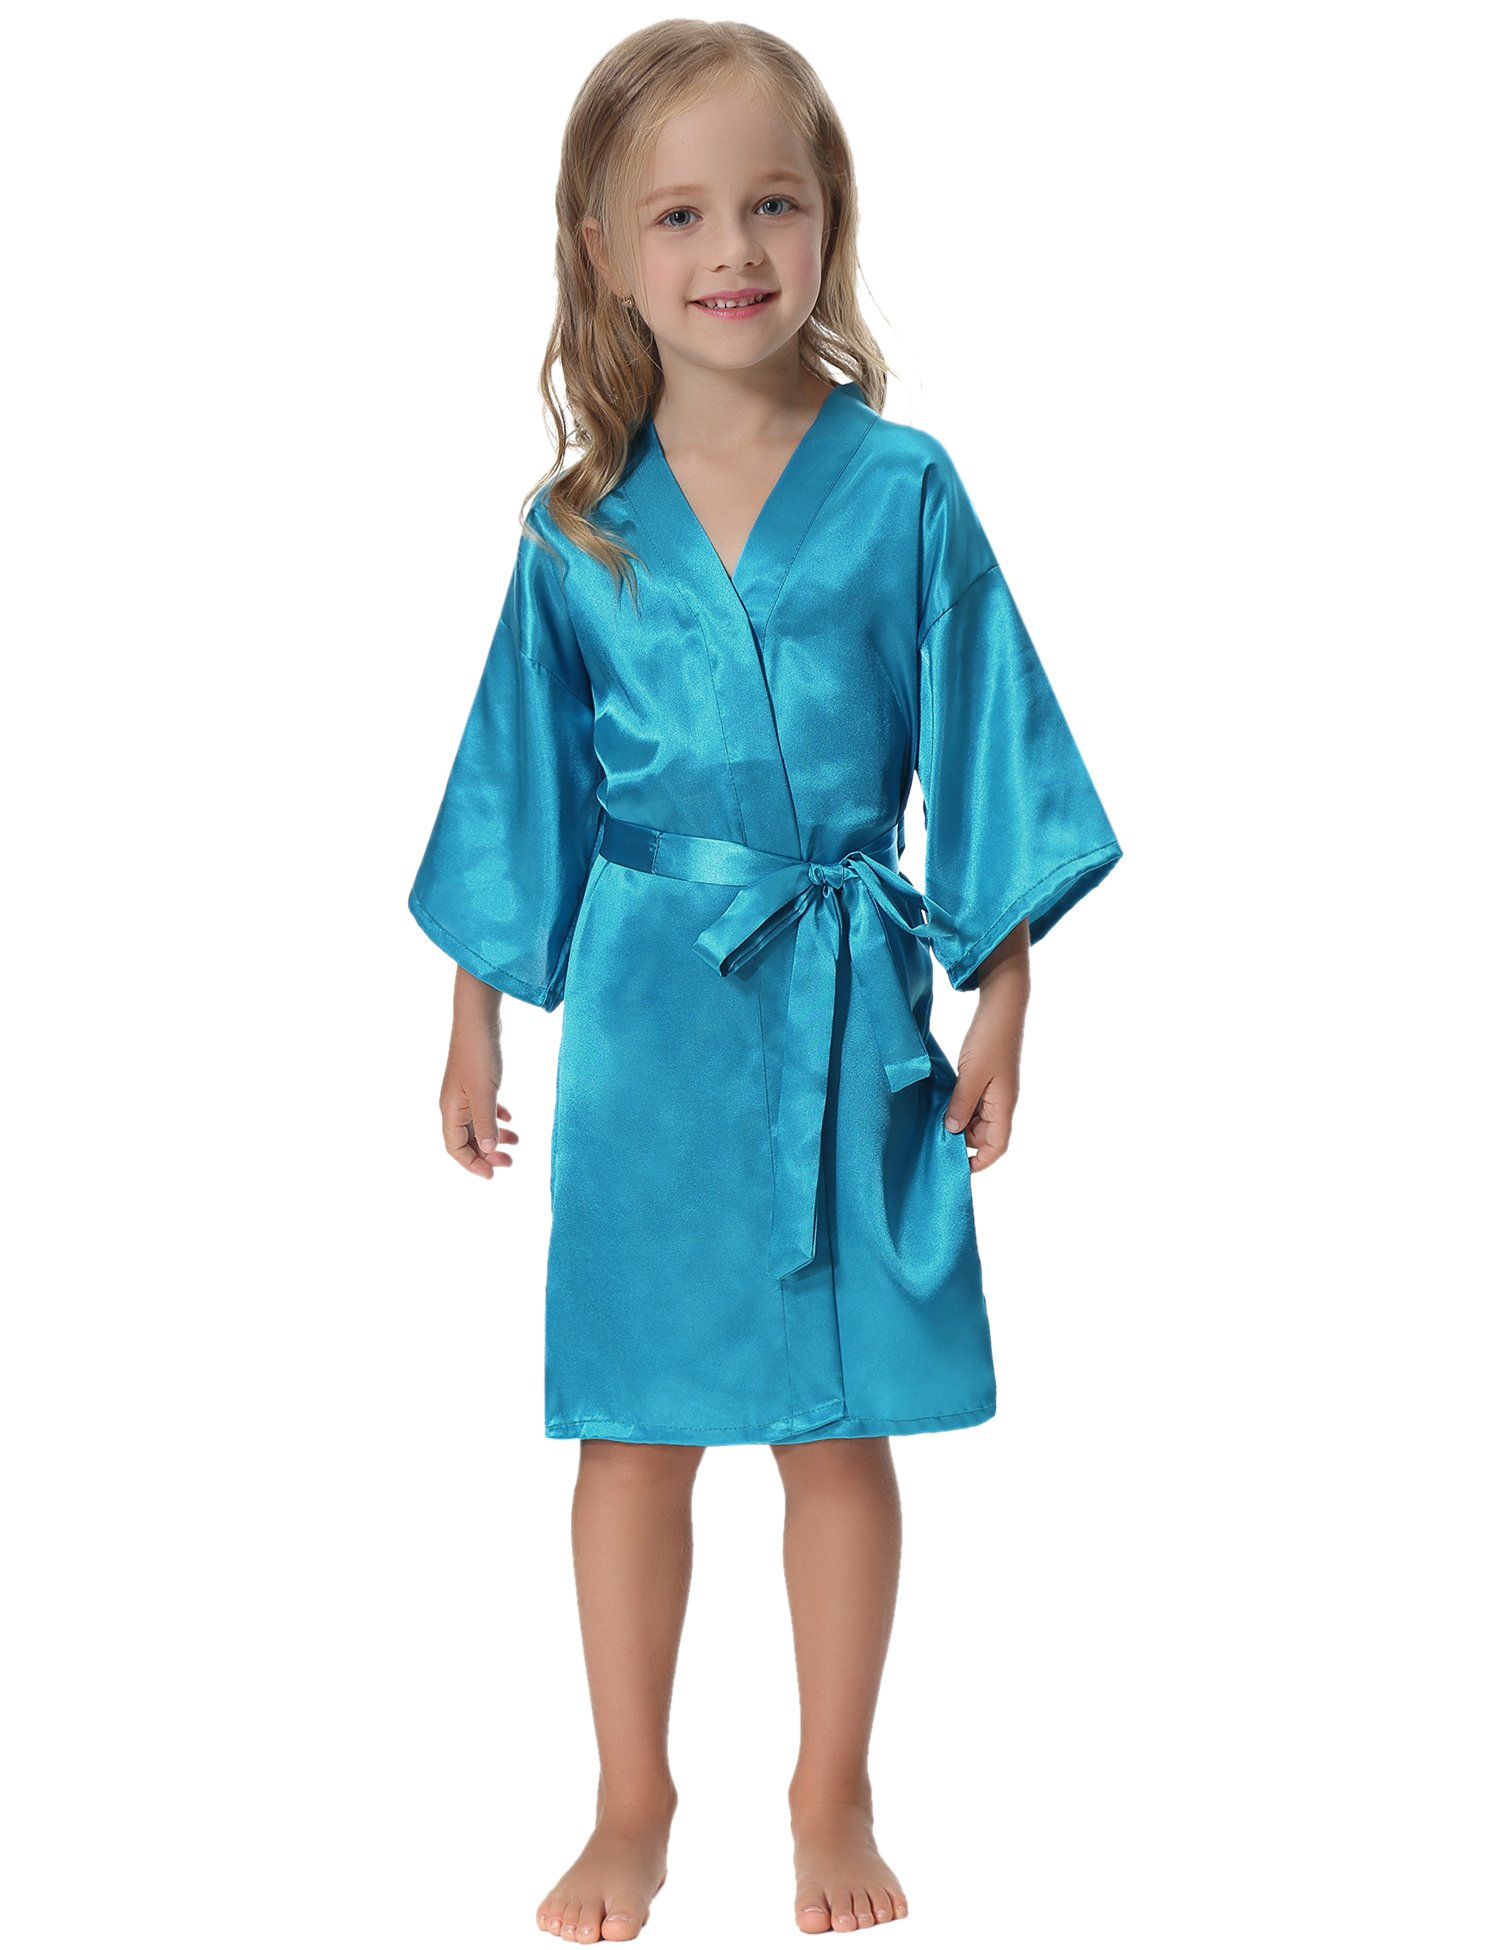 Aibrou Kids' Satin Kimono Robe Bathrobe Nightgown For Spa Party Wedding Birthday by Aibrou